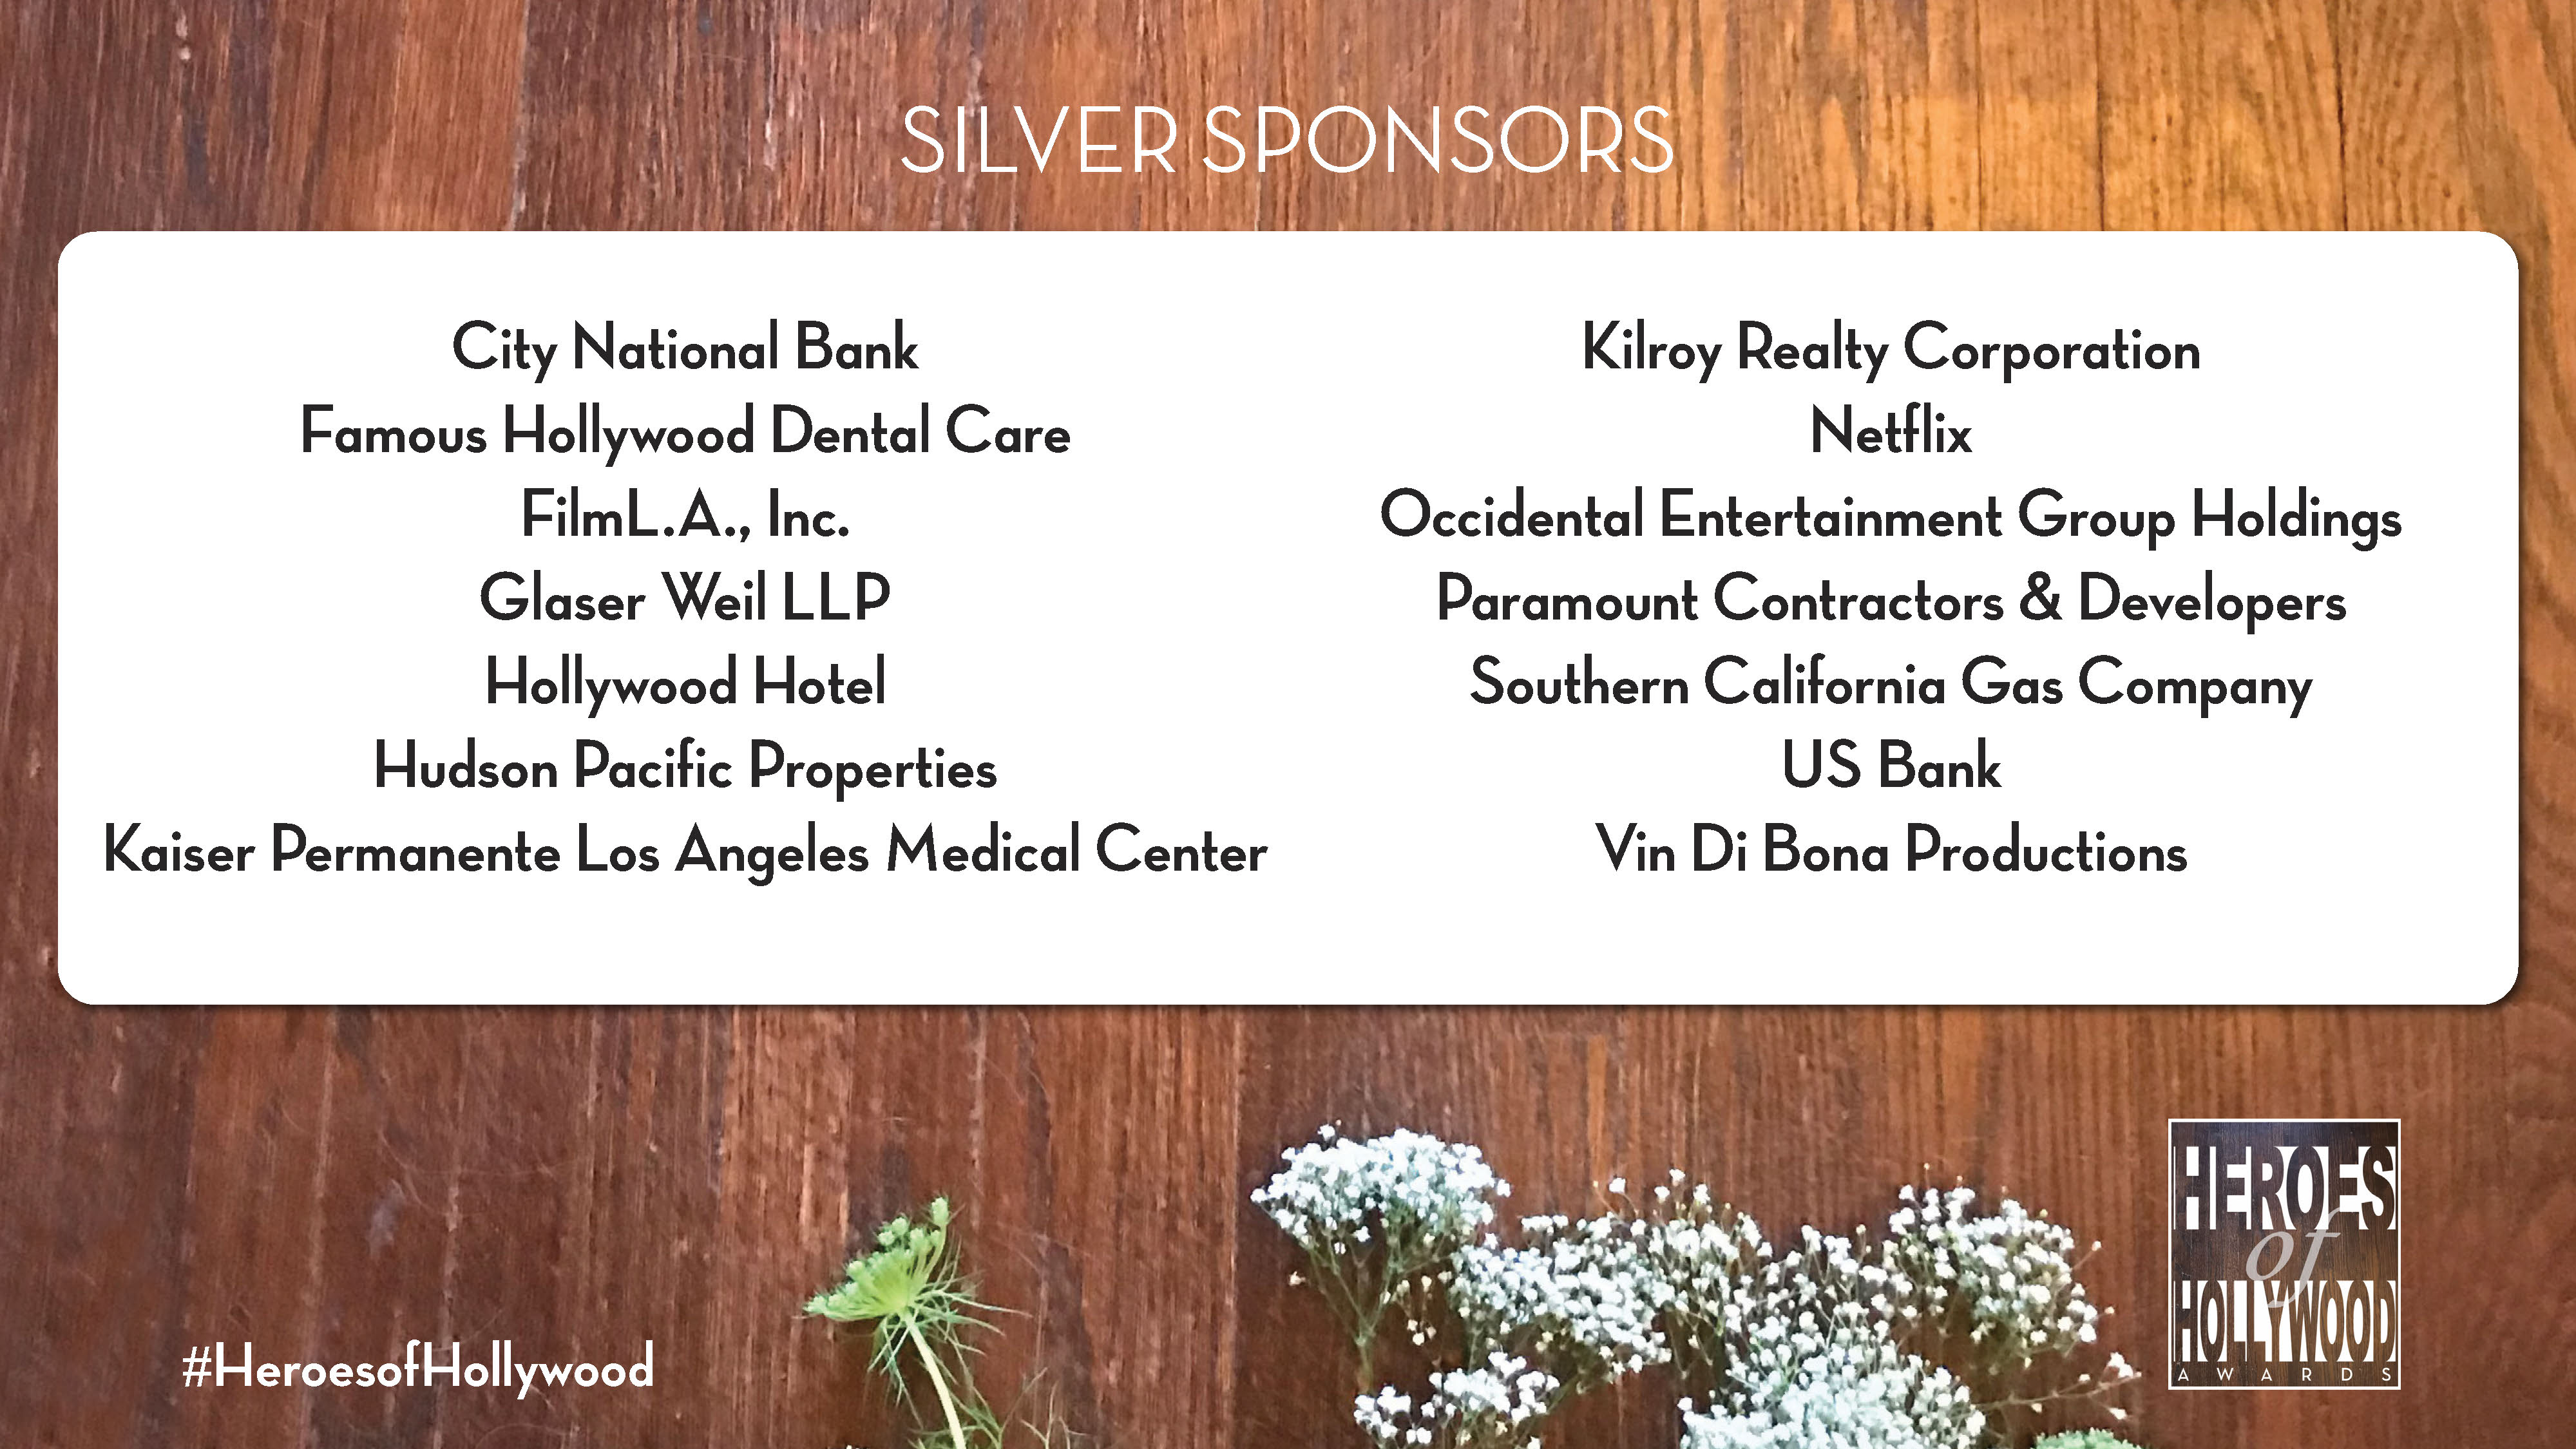 Silver Level sponsors of Heroes of Hollywood 2018